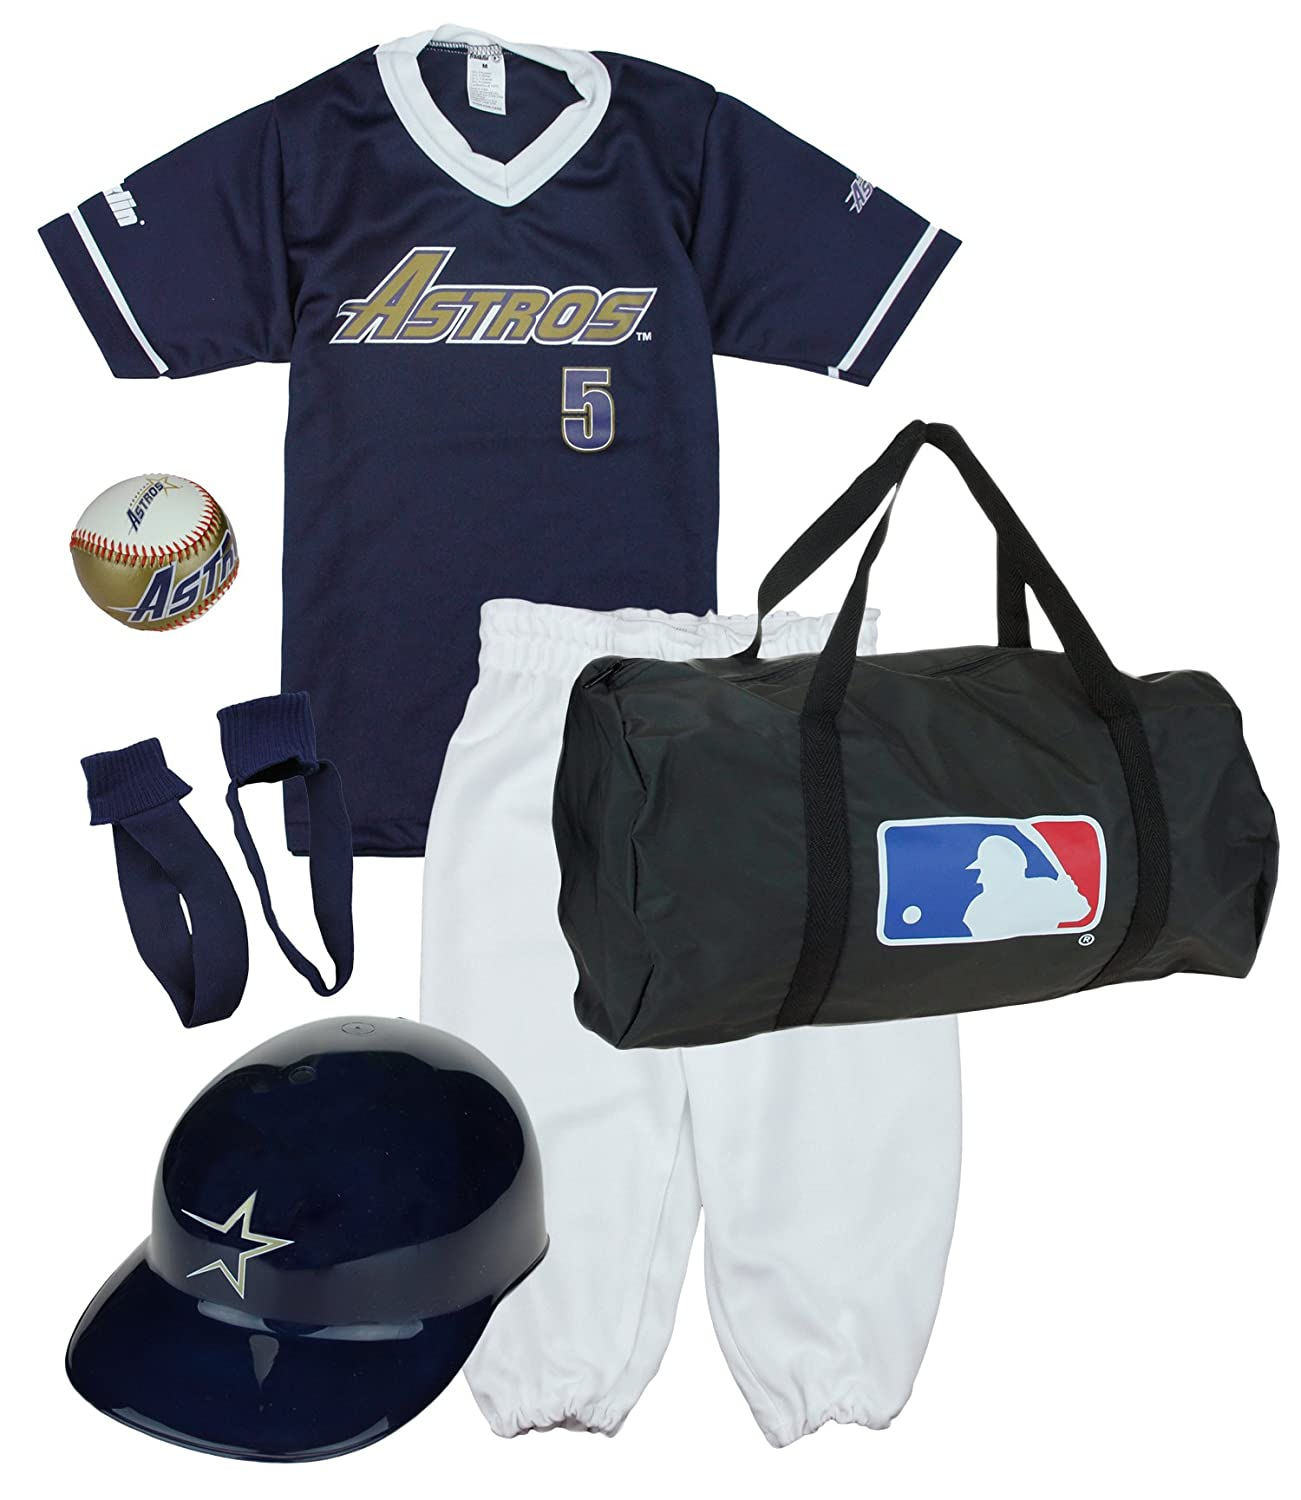 Amazon.com  Franklin Houston Astros Baseball Youth Uniform Set Ages 7-10  Kids (Medium Ages 7 to 10)  Toys   Games a6d7d01ccf8e